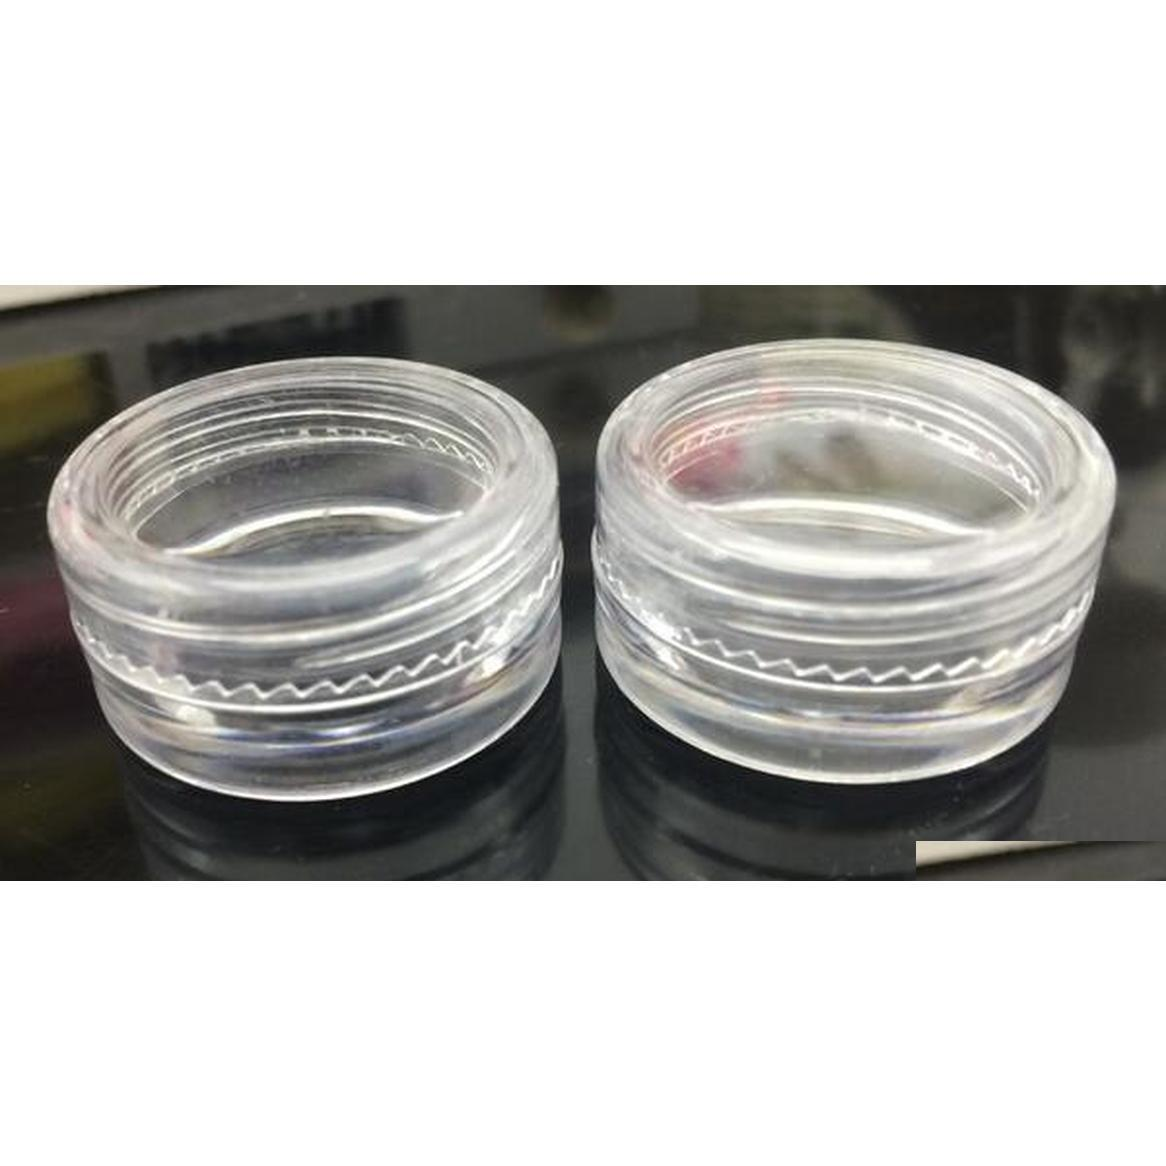 5ml clear fda approved plastic jars container for wax jars dab wax container cheap hot selling china product